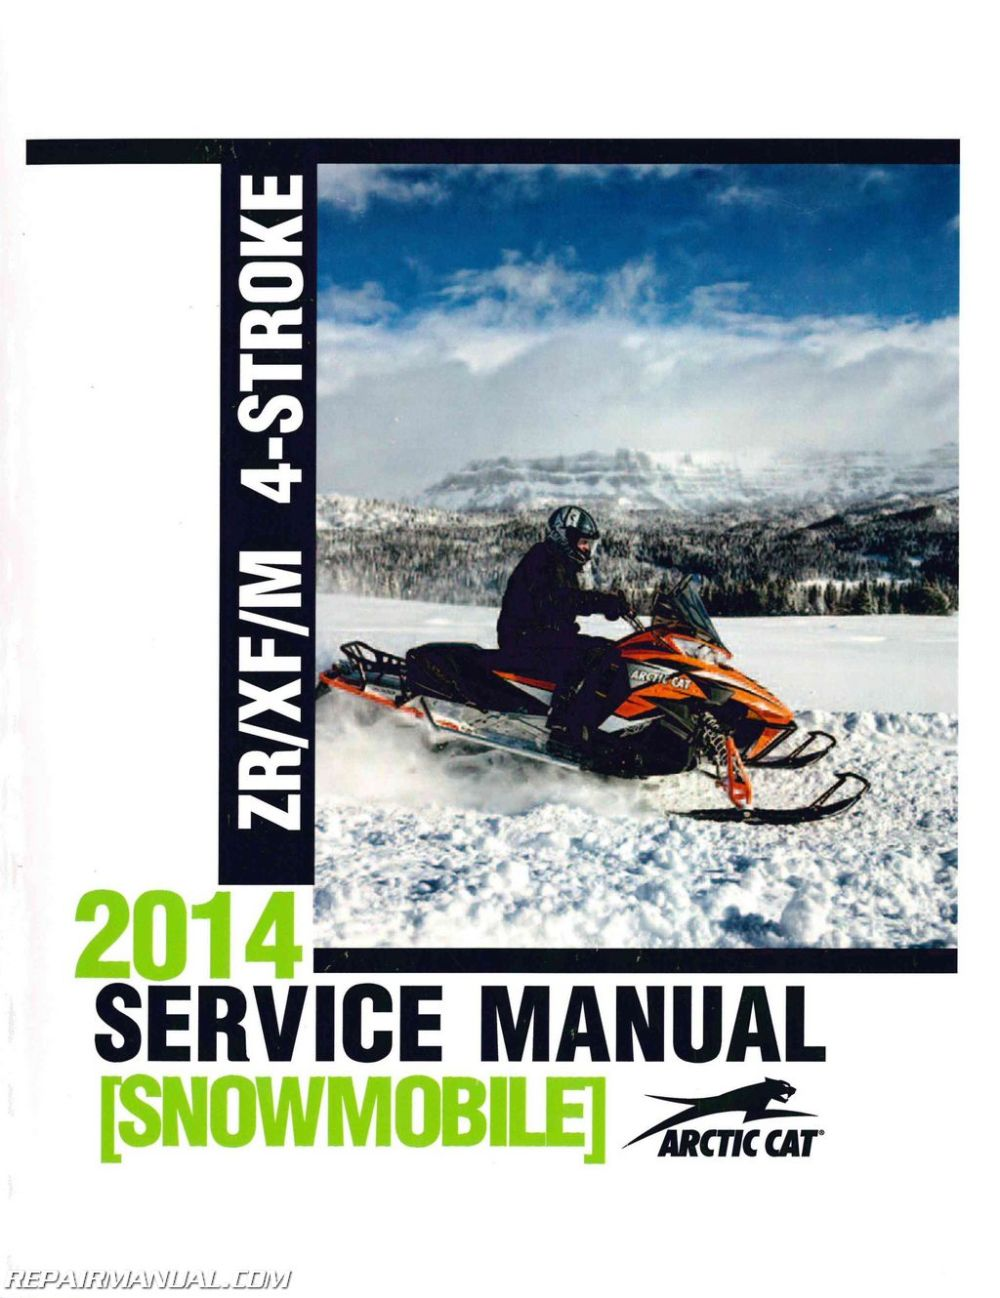 medium resolution of arctic cat snowmobile 4 stroke wiring diagrams example electrical snowmobile parts diagram 2014 arctic cat zr